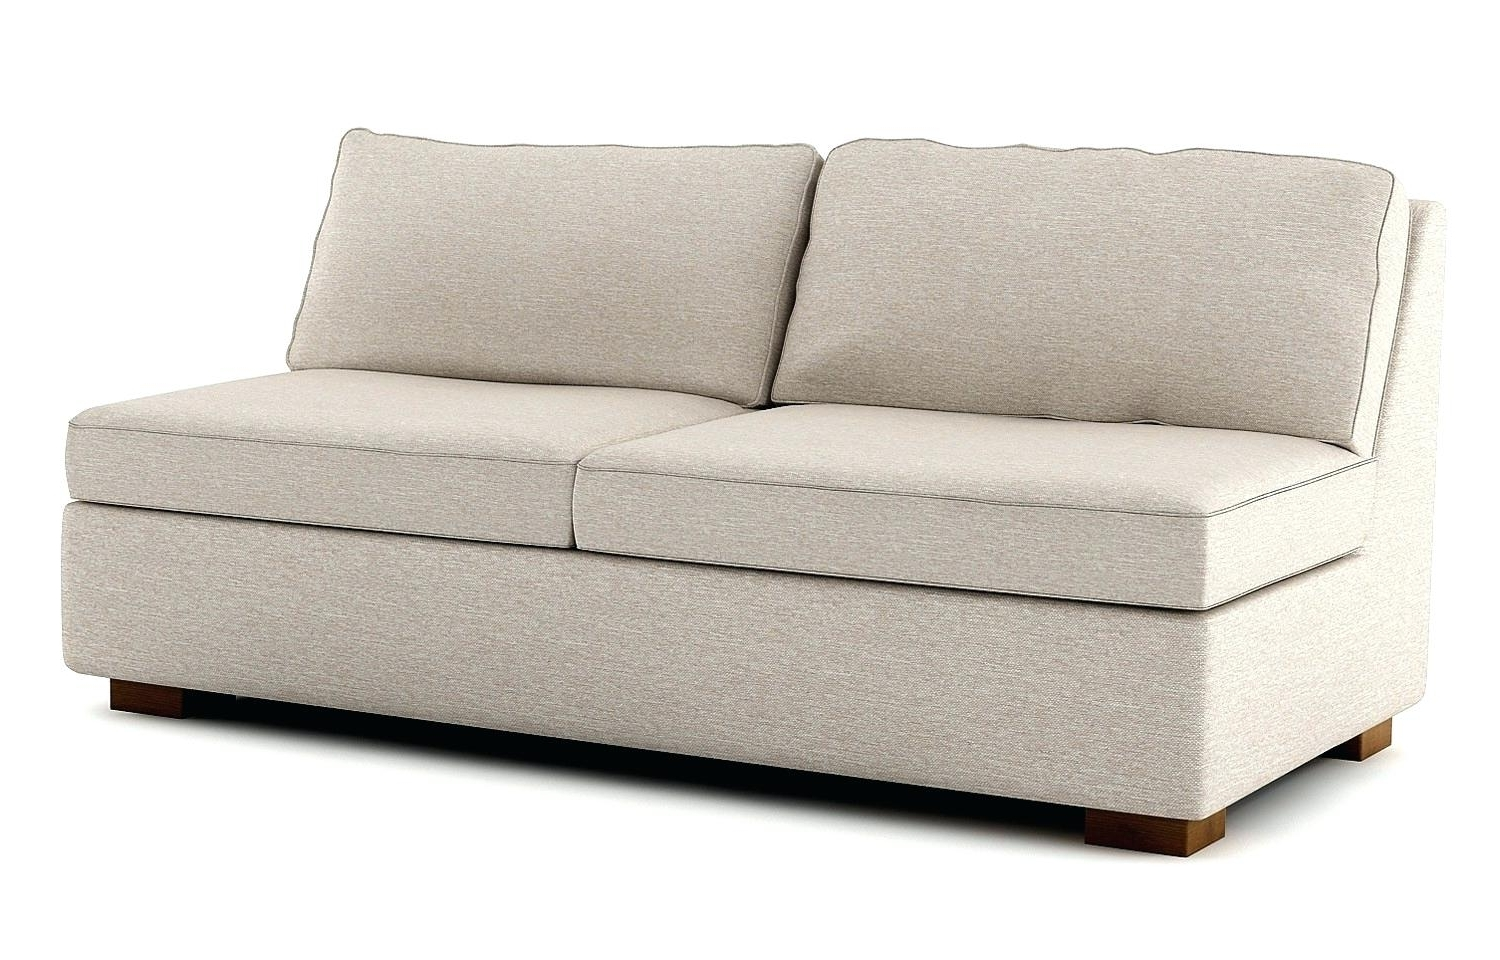 Small Armless Sofas Inside Fashionable Armless Sofas Small Sofa Uk Bed And Chairs – Poikilothermia (View 10 of 20)